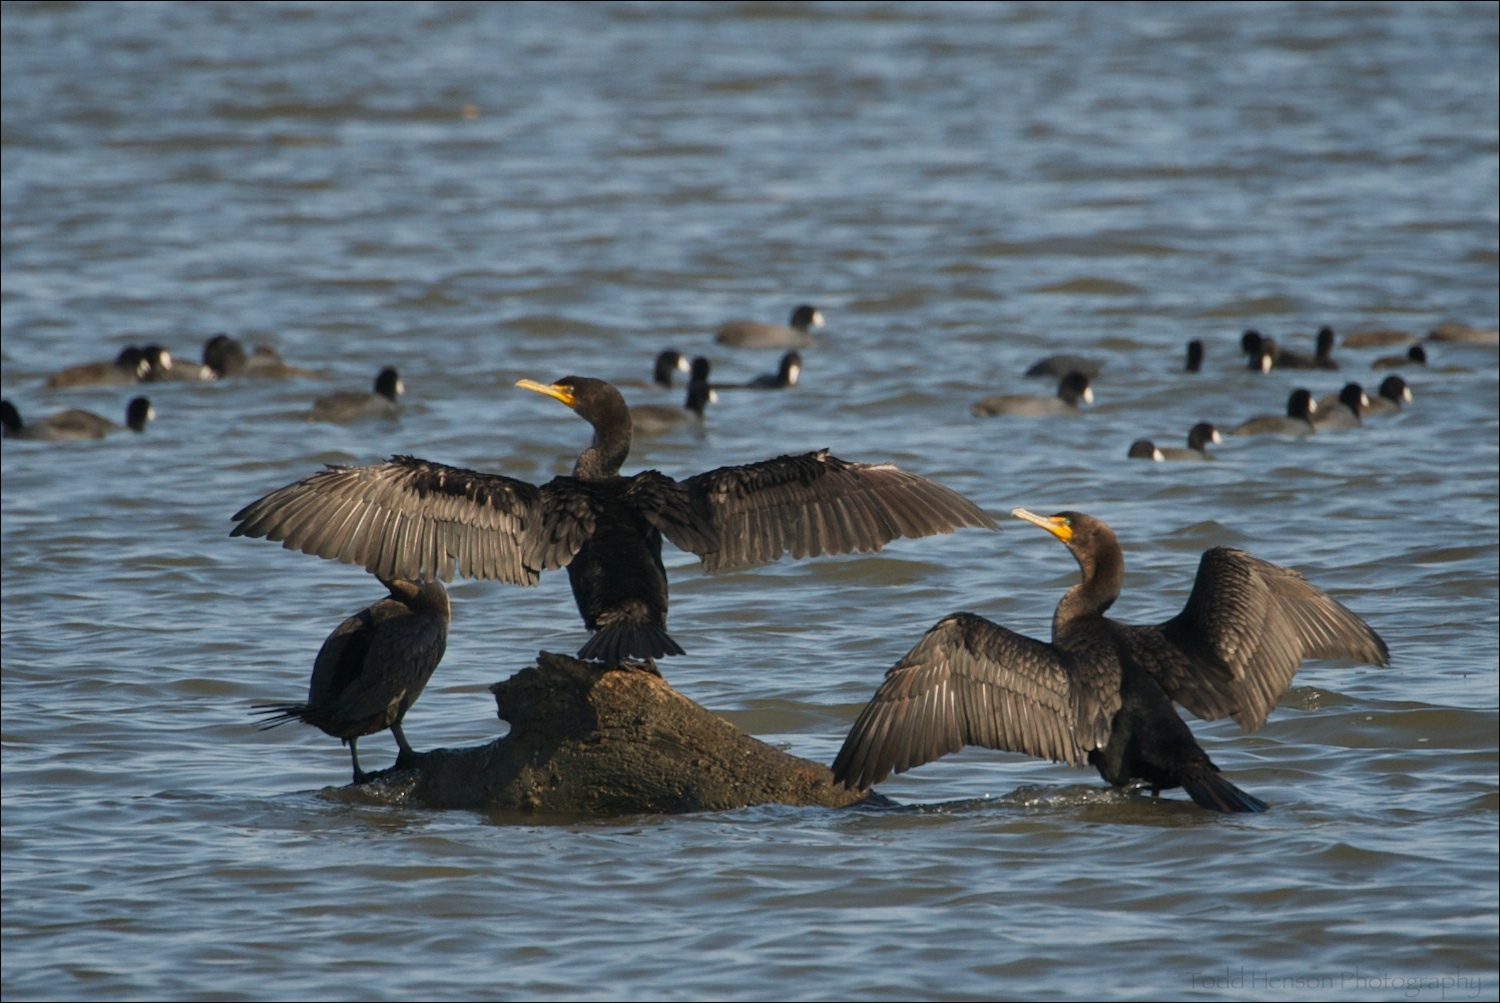 Three Double-crested Cormorant (one's head is hidden behind the wing of another) standing on a rock with a large number of American Coot swimming in the background.